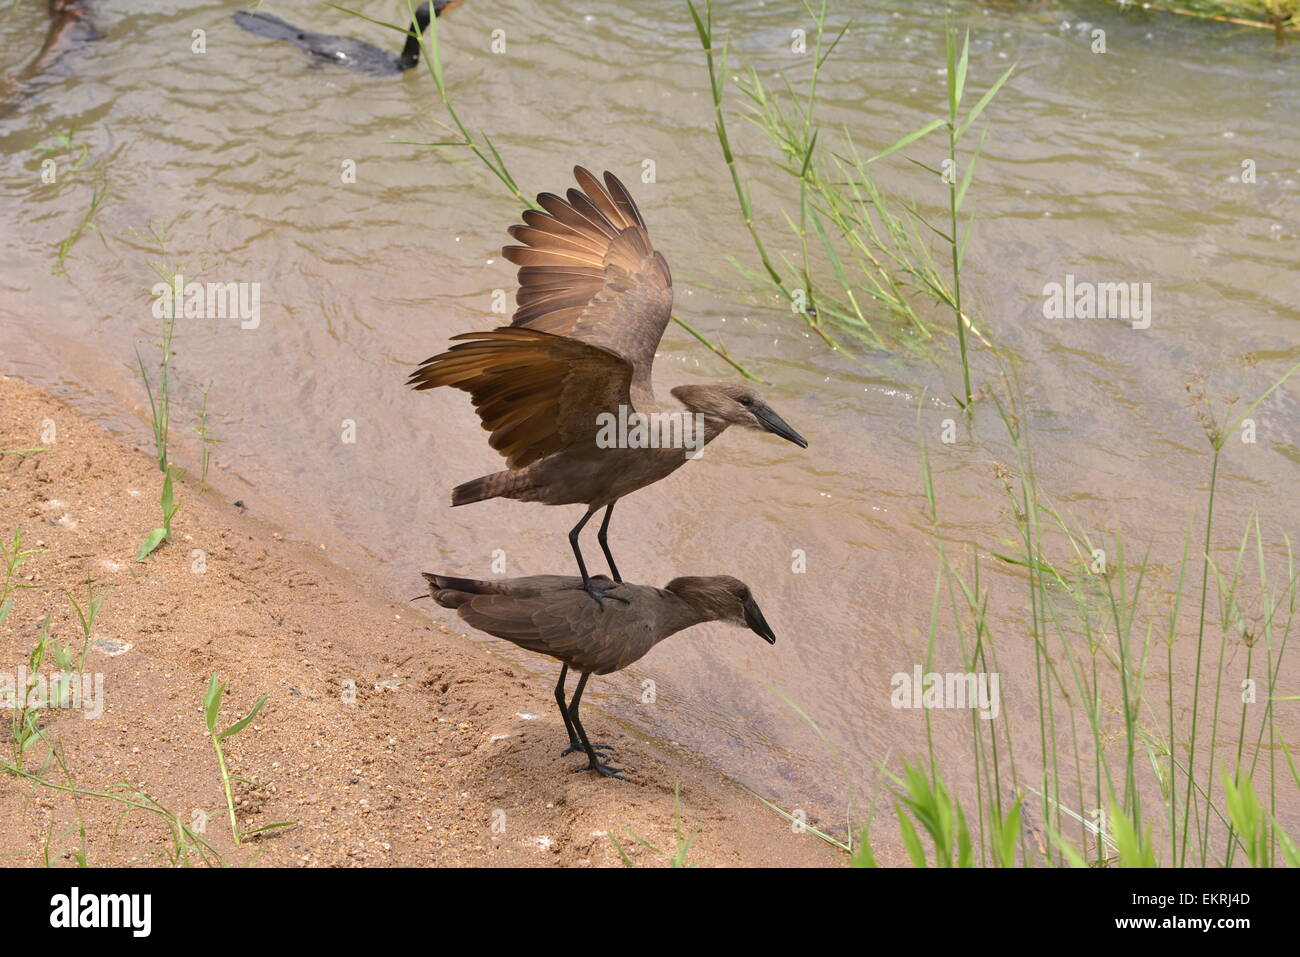 Hamerkop birds trying to mate in world famous Kruger National Park, Mpumalanga, South Africa. - Stock Image